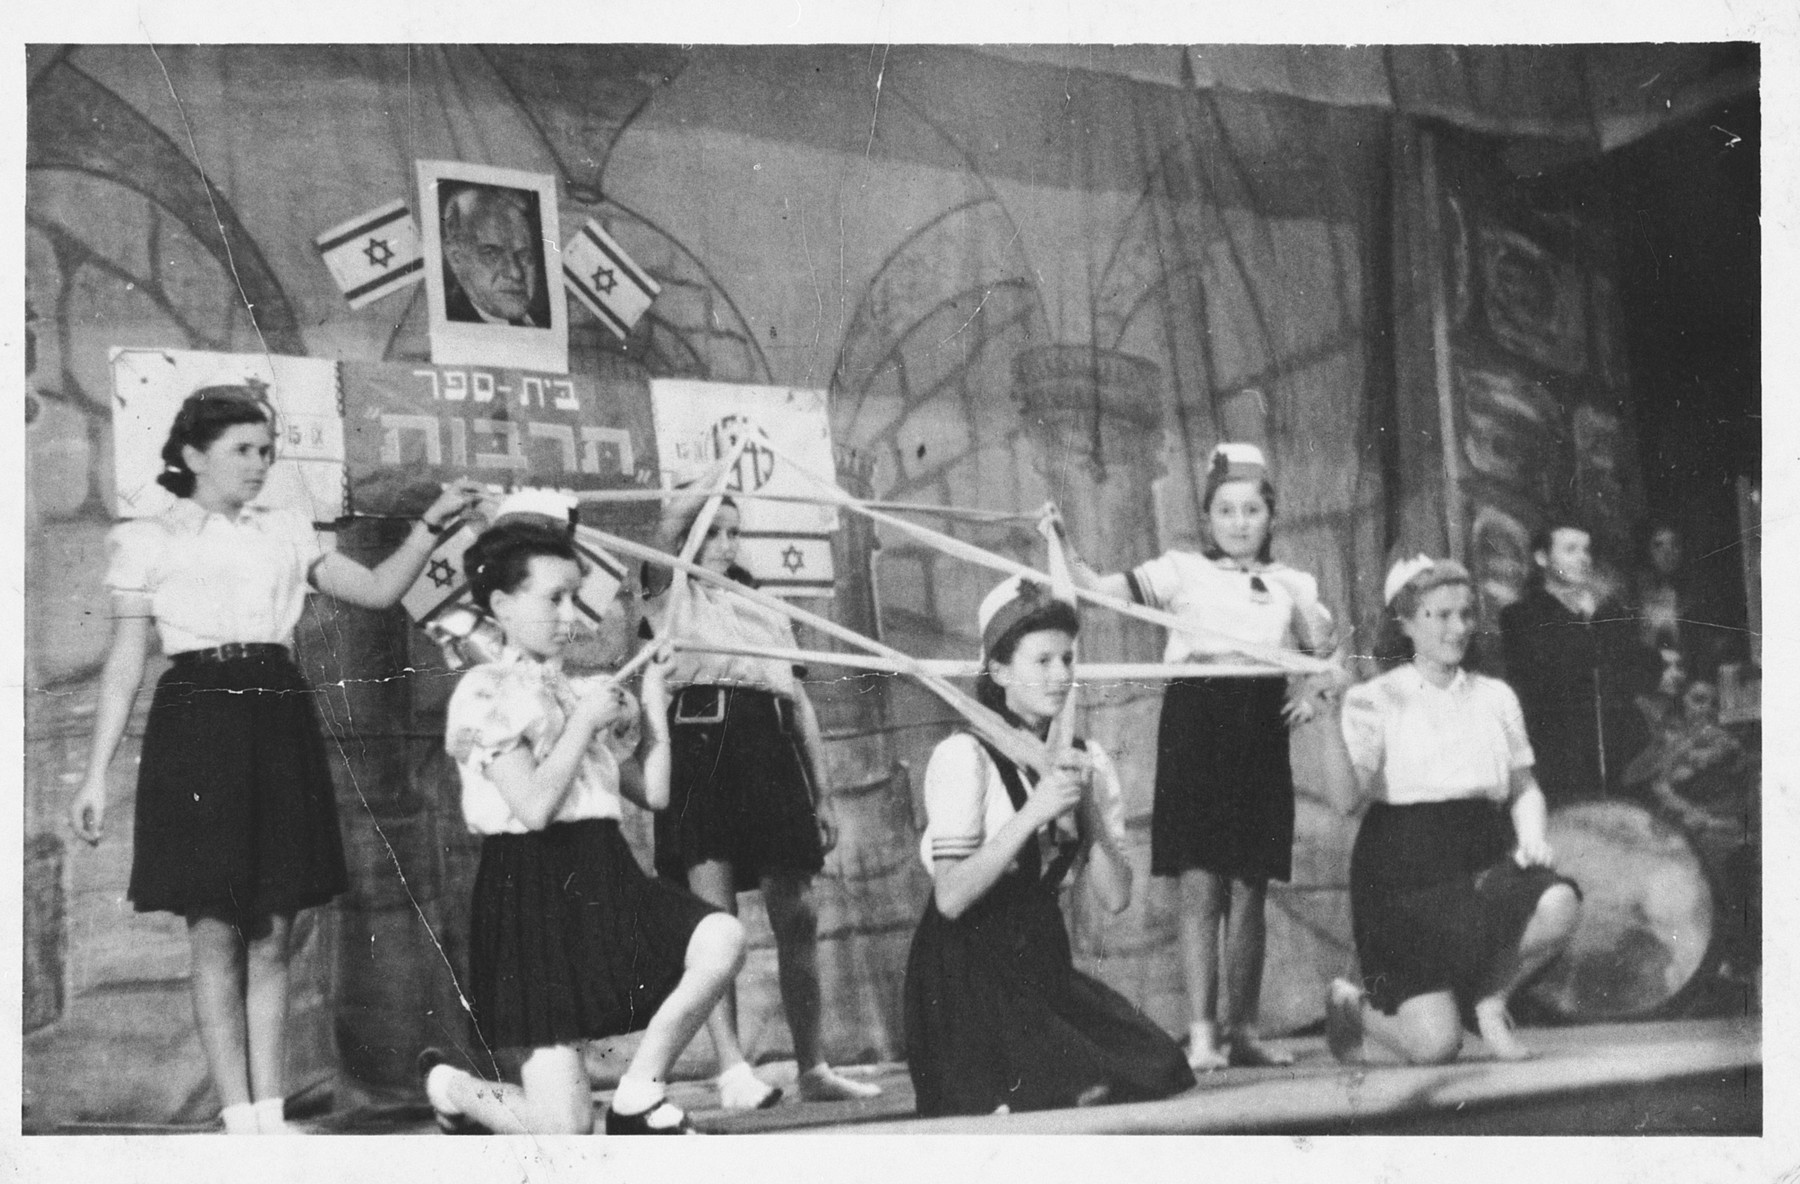 Children make a Jewish star out of ribbon during a performance at the Foehrenwald displaced persons camp.